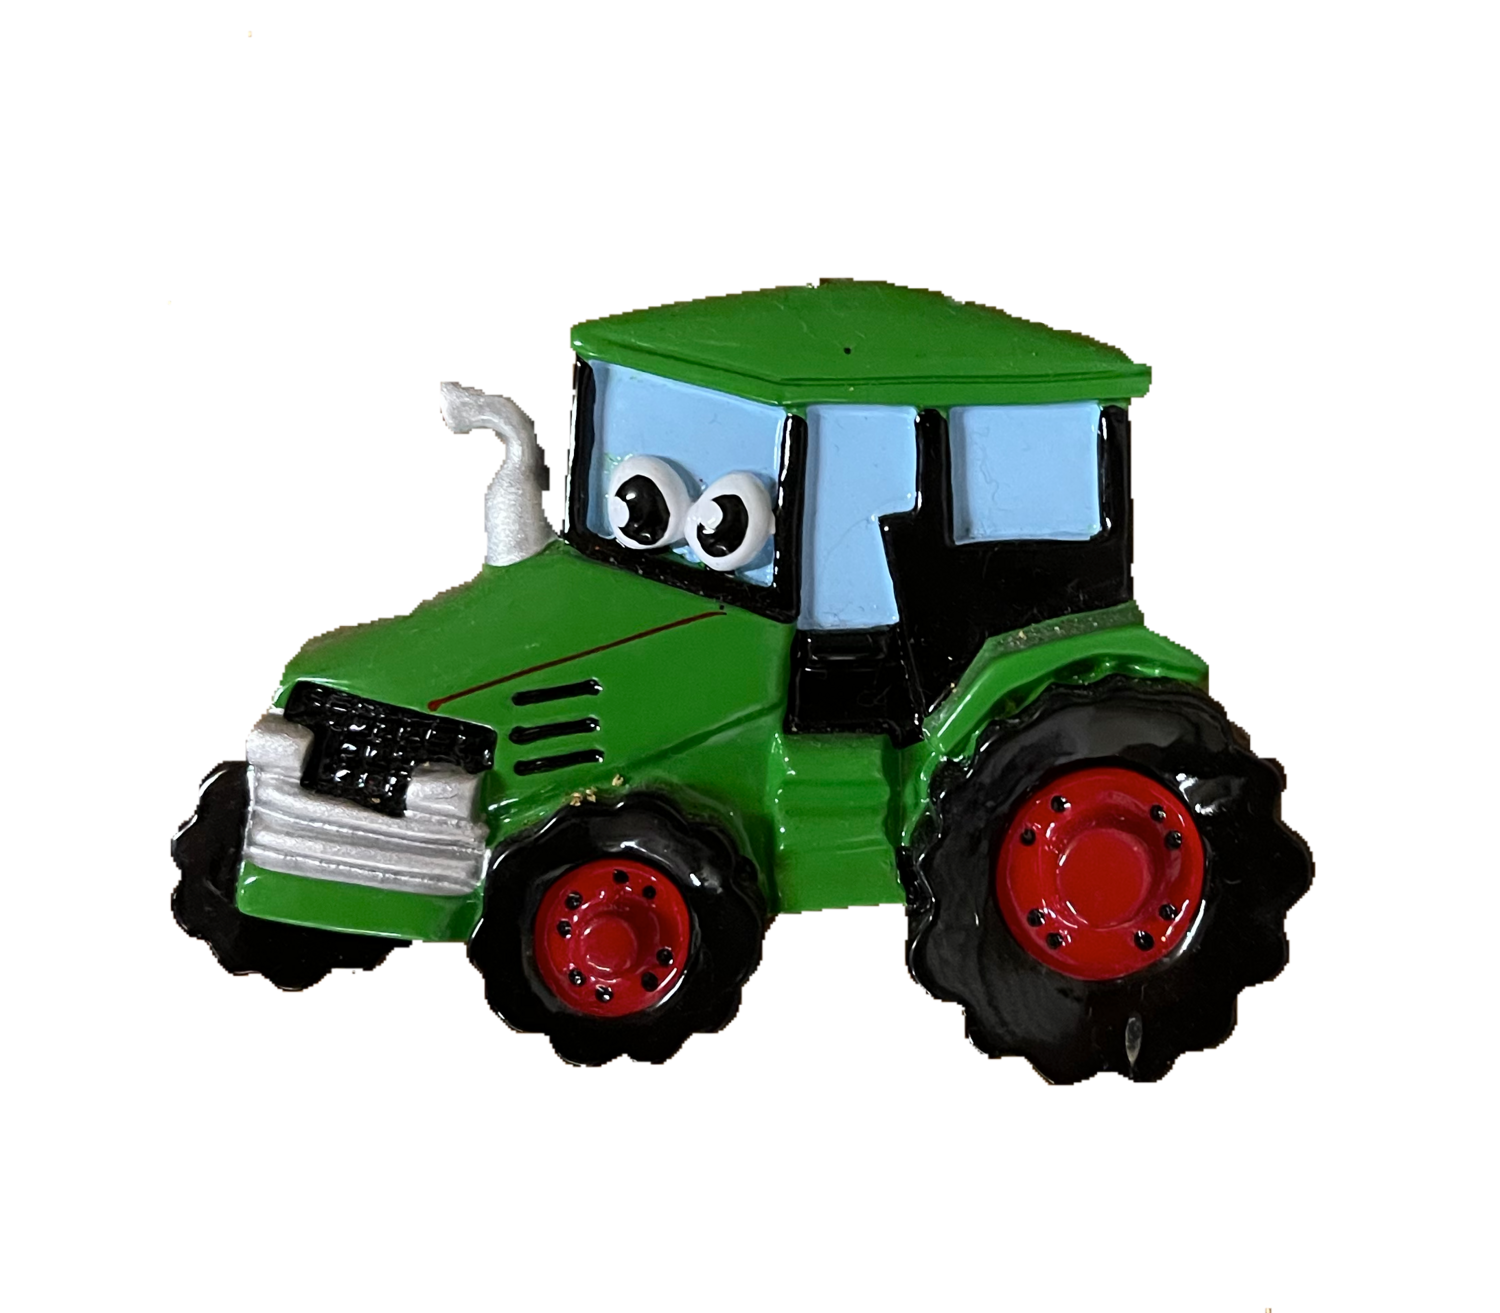 Tractor Christmas tree ornament